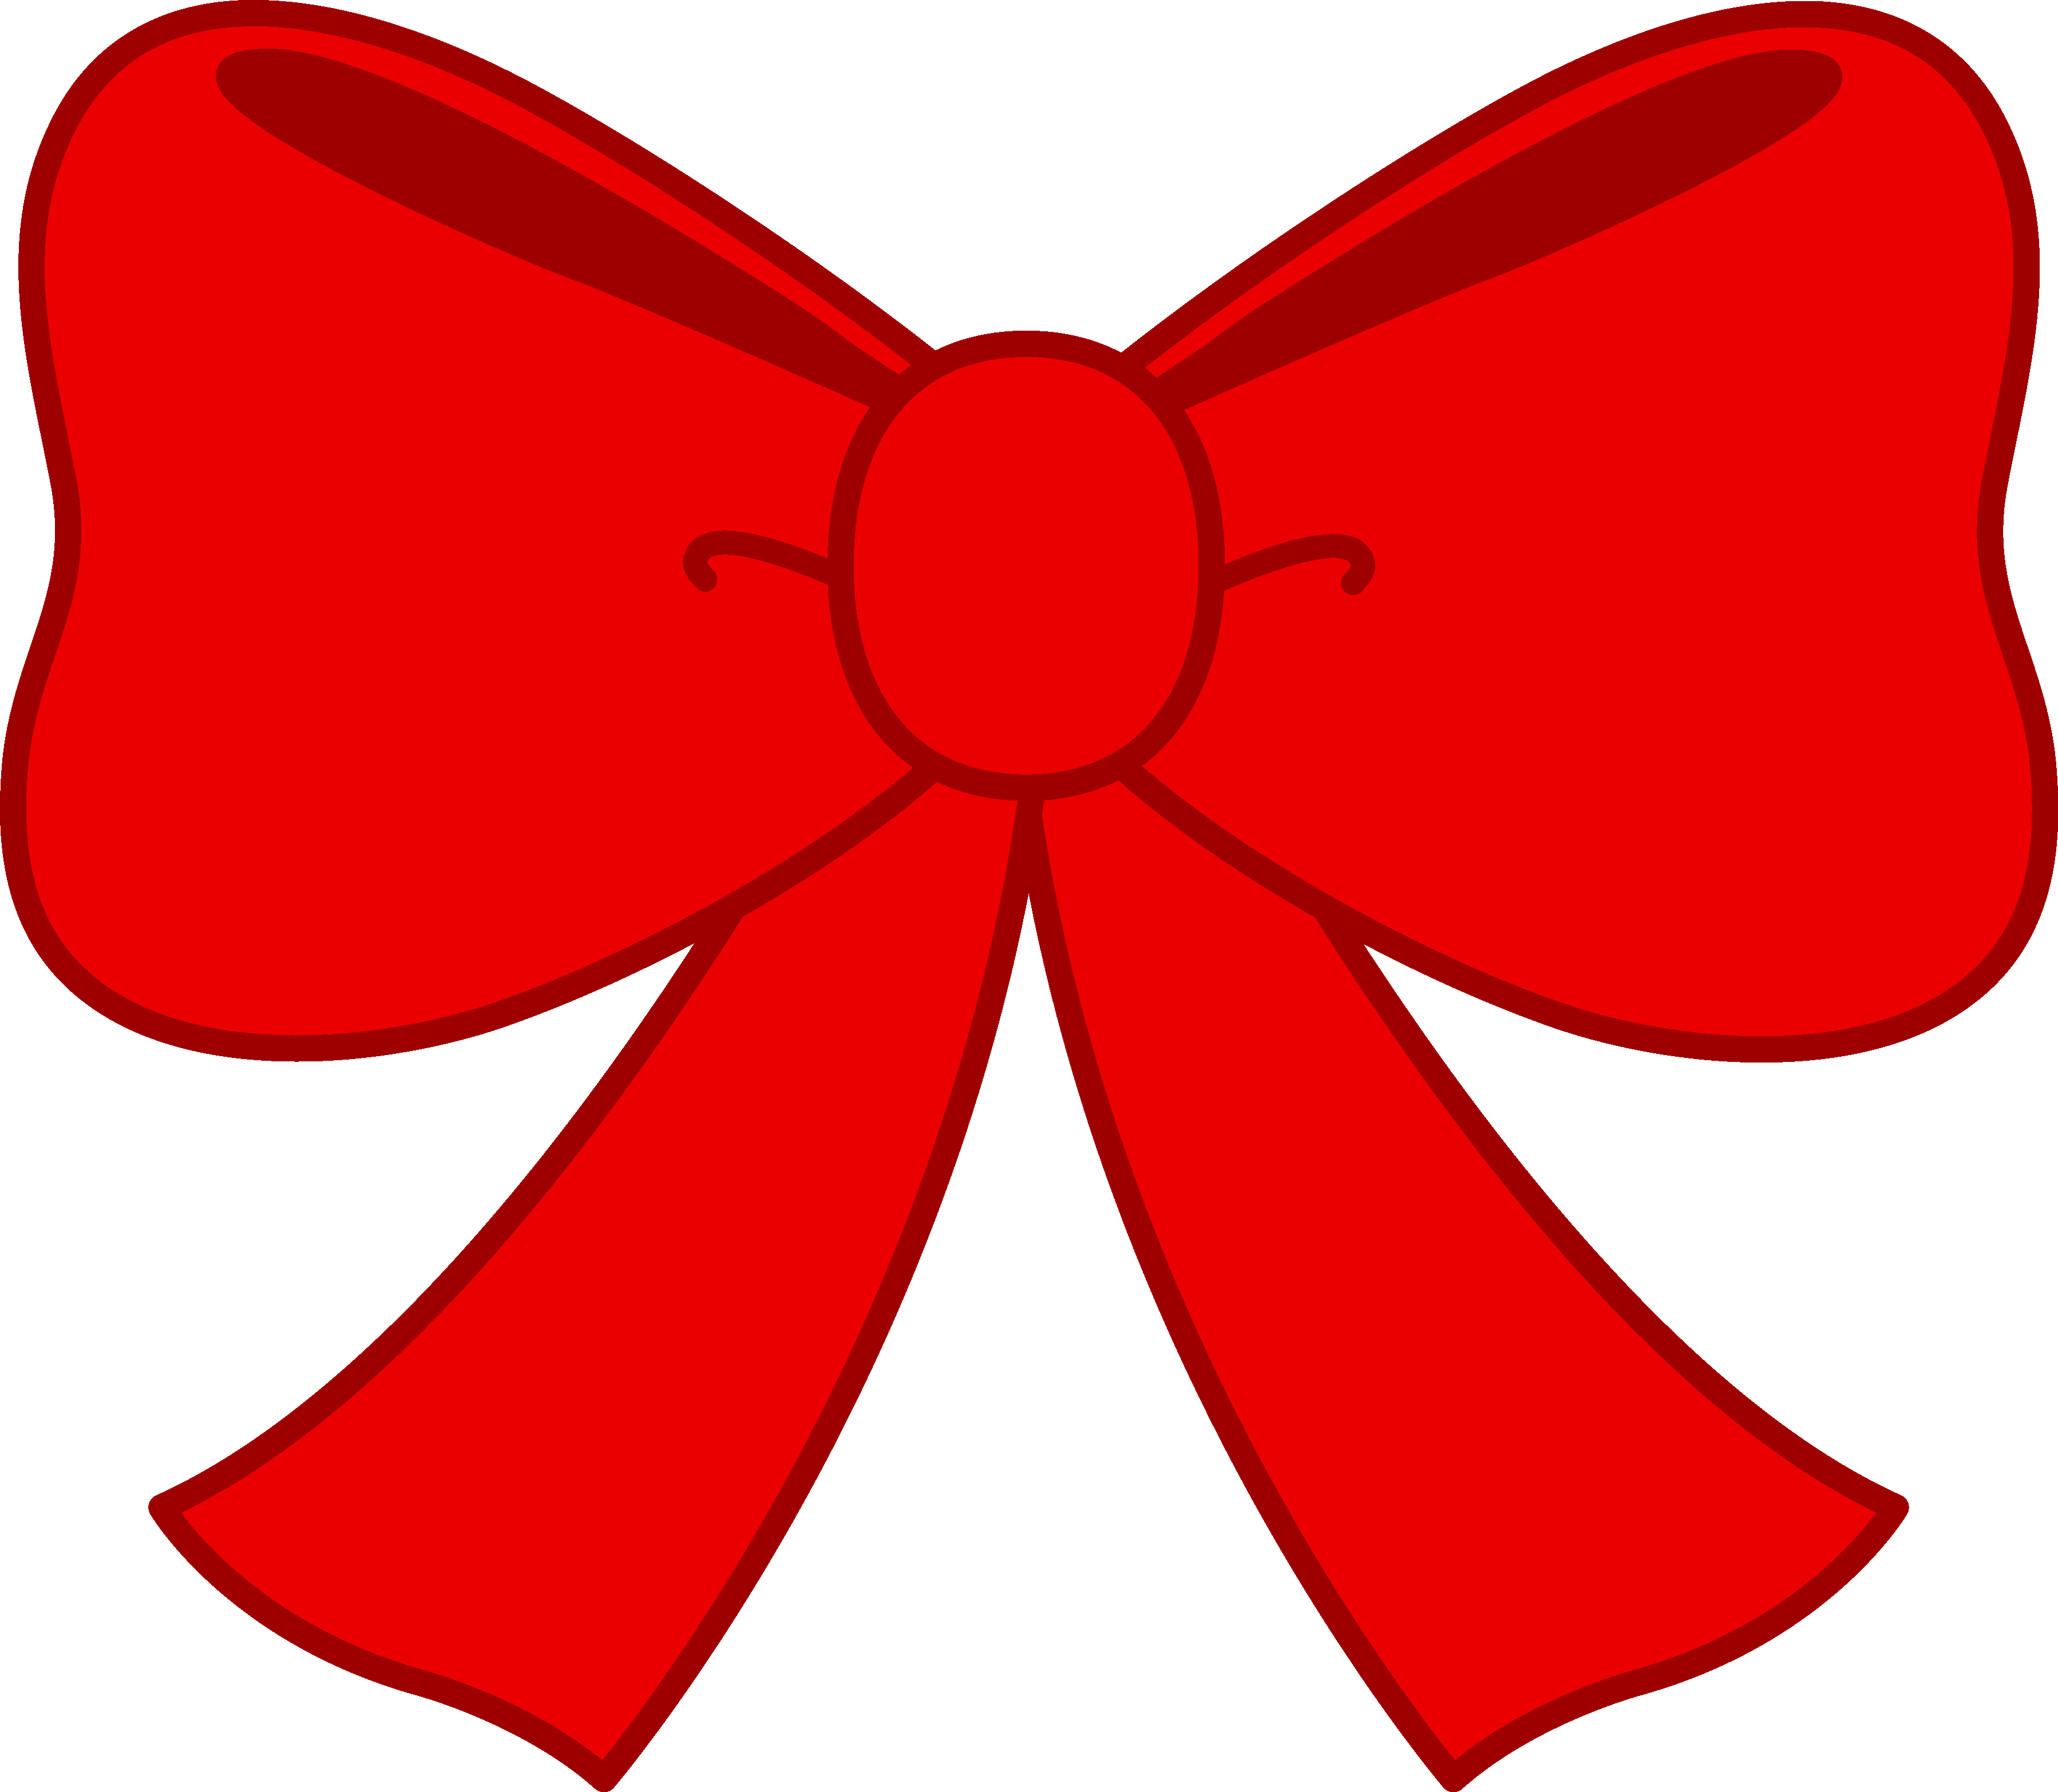 Cute Red Bow Clipart - Free Clip Art - Cute Bow PNG HD